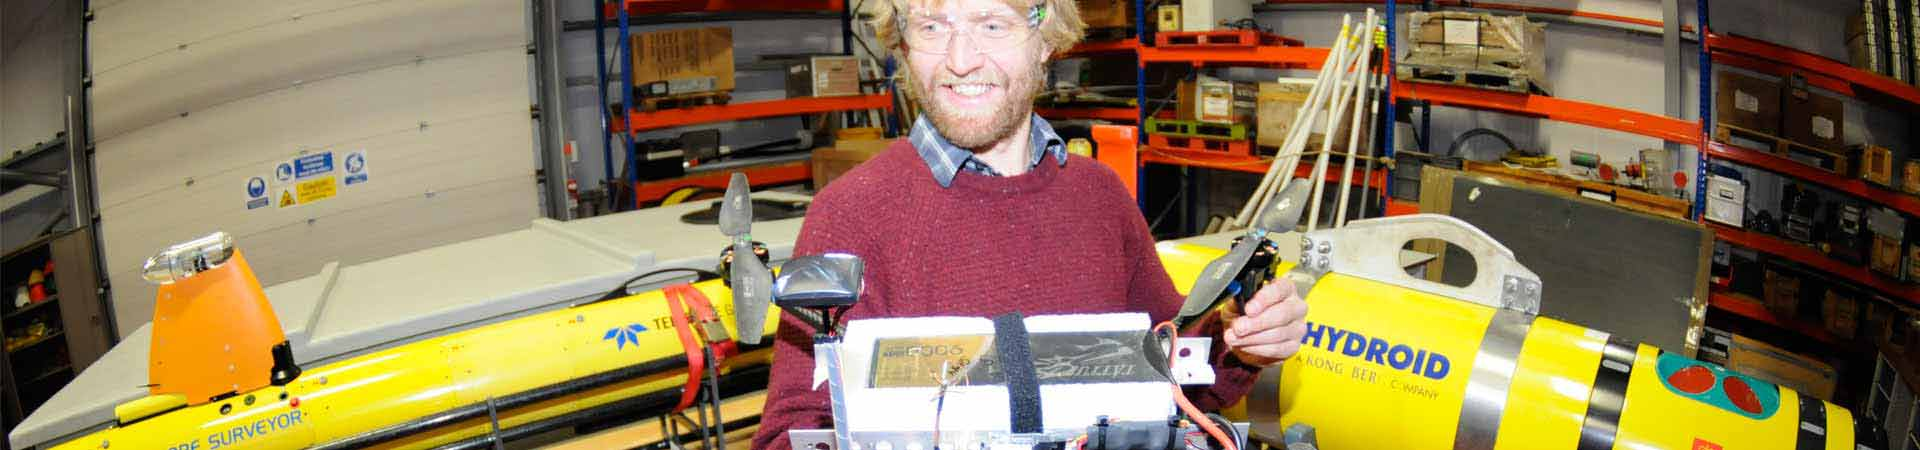 Technologist working on sensors for marine robots.